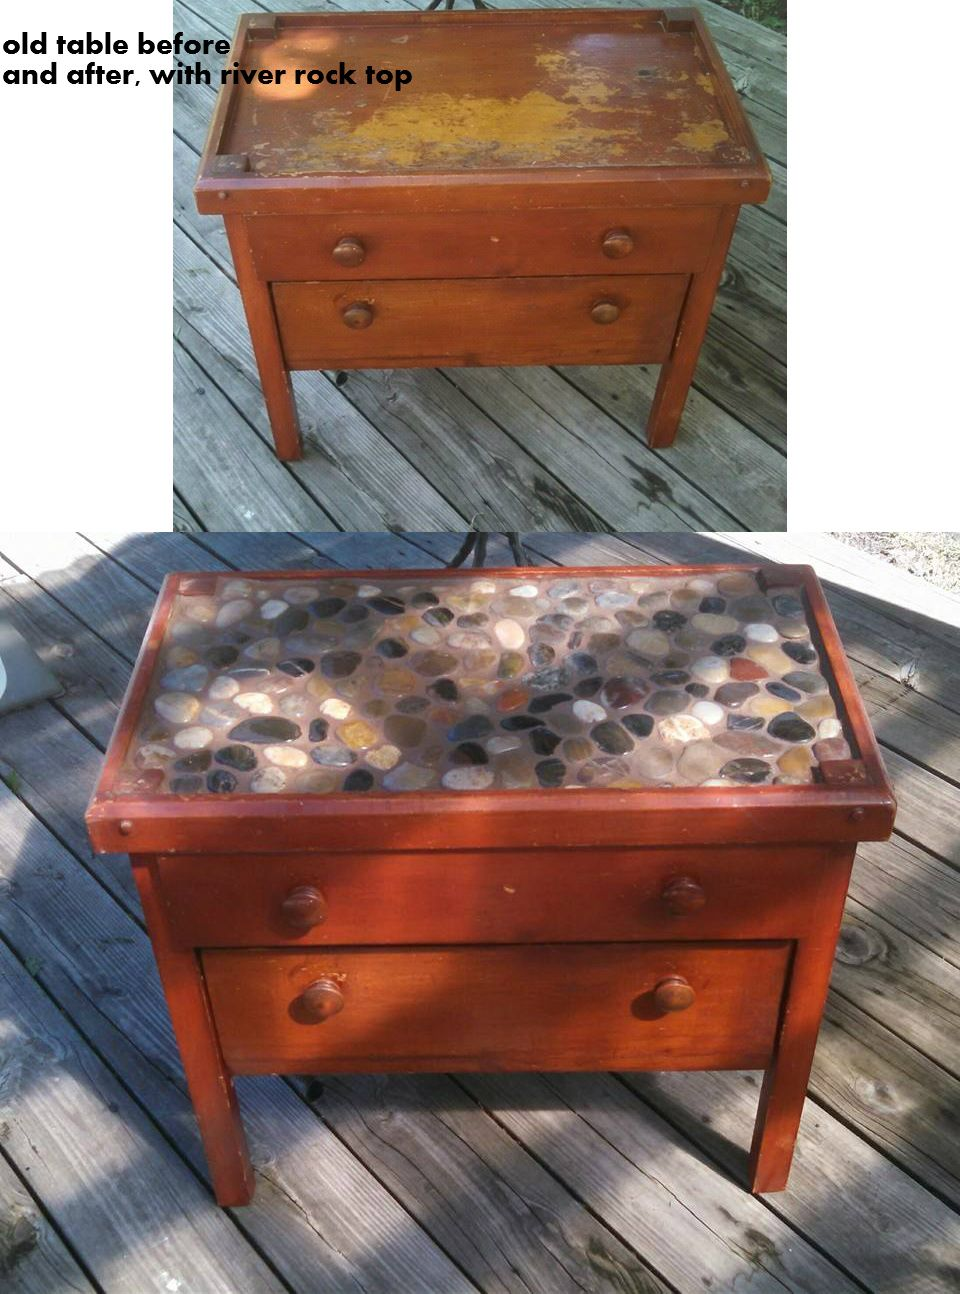 Snagged a cool vintage table with a top drawer, bottom pull down ...